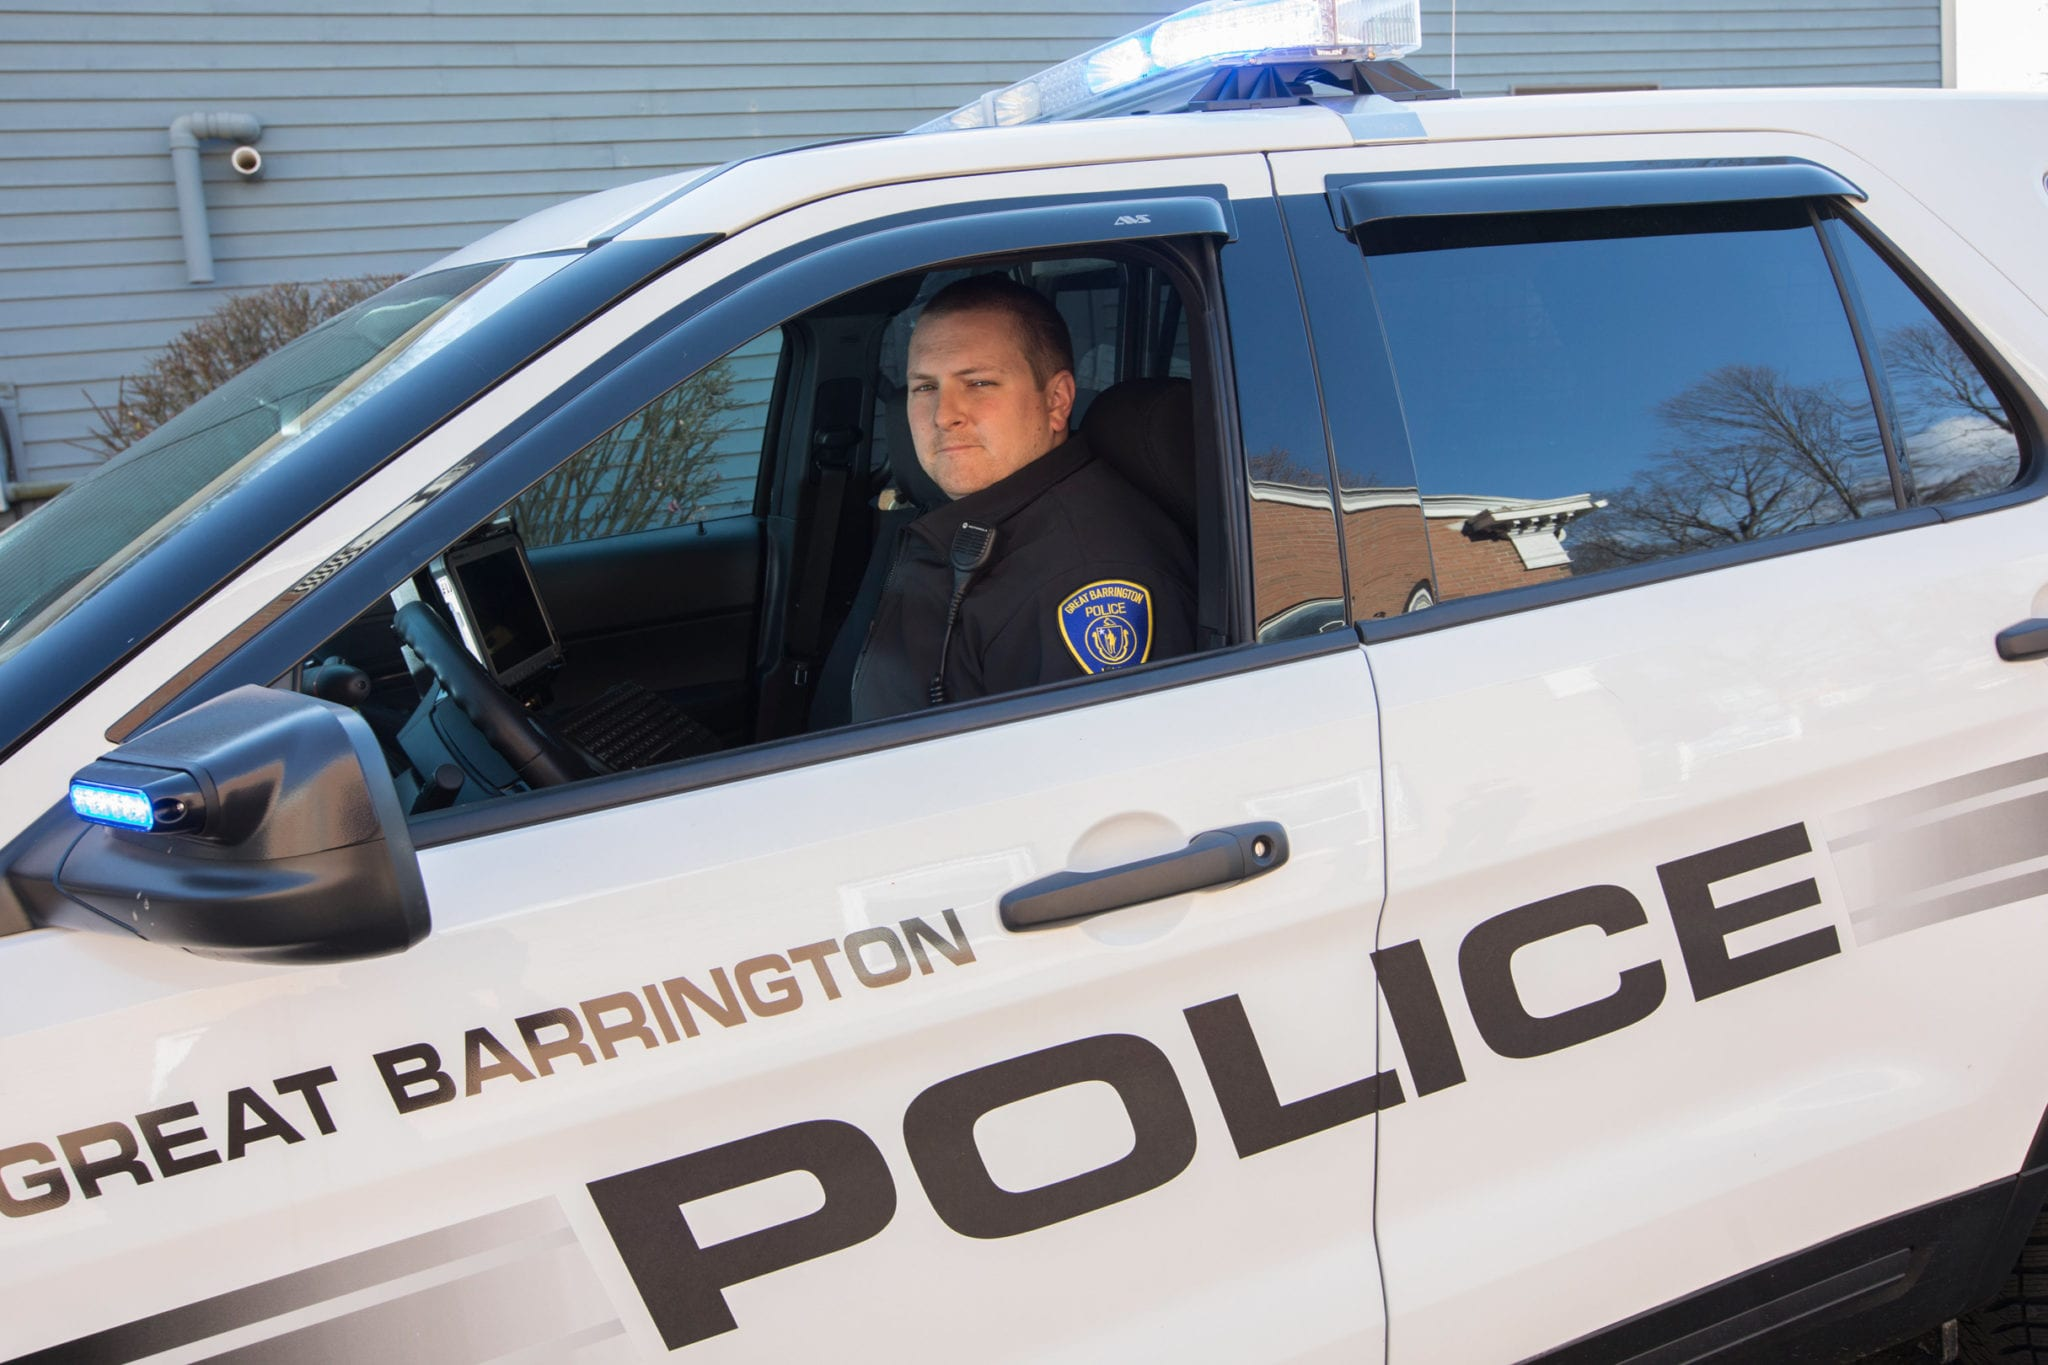 GreatBarringtonPD31_88